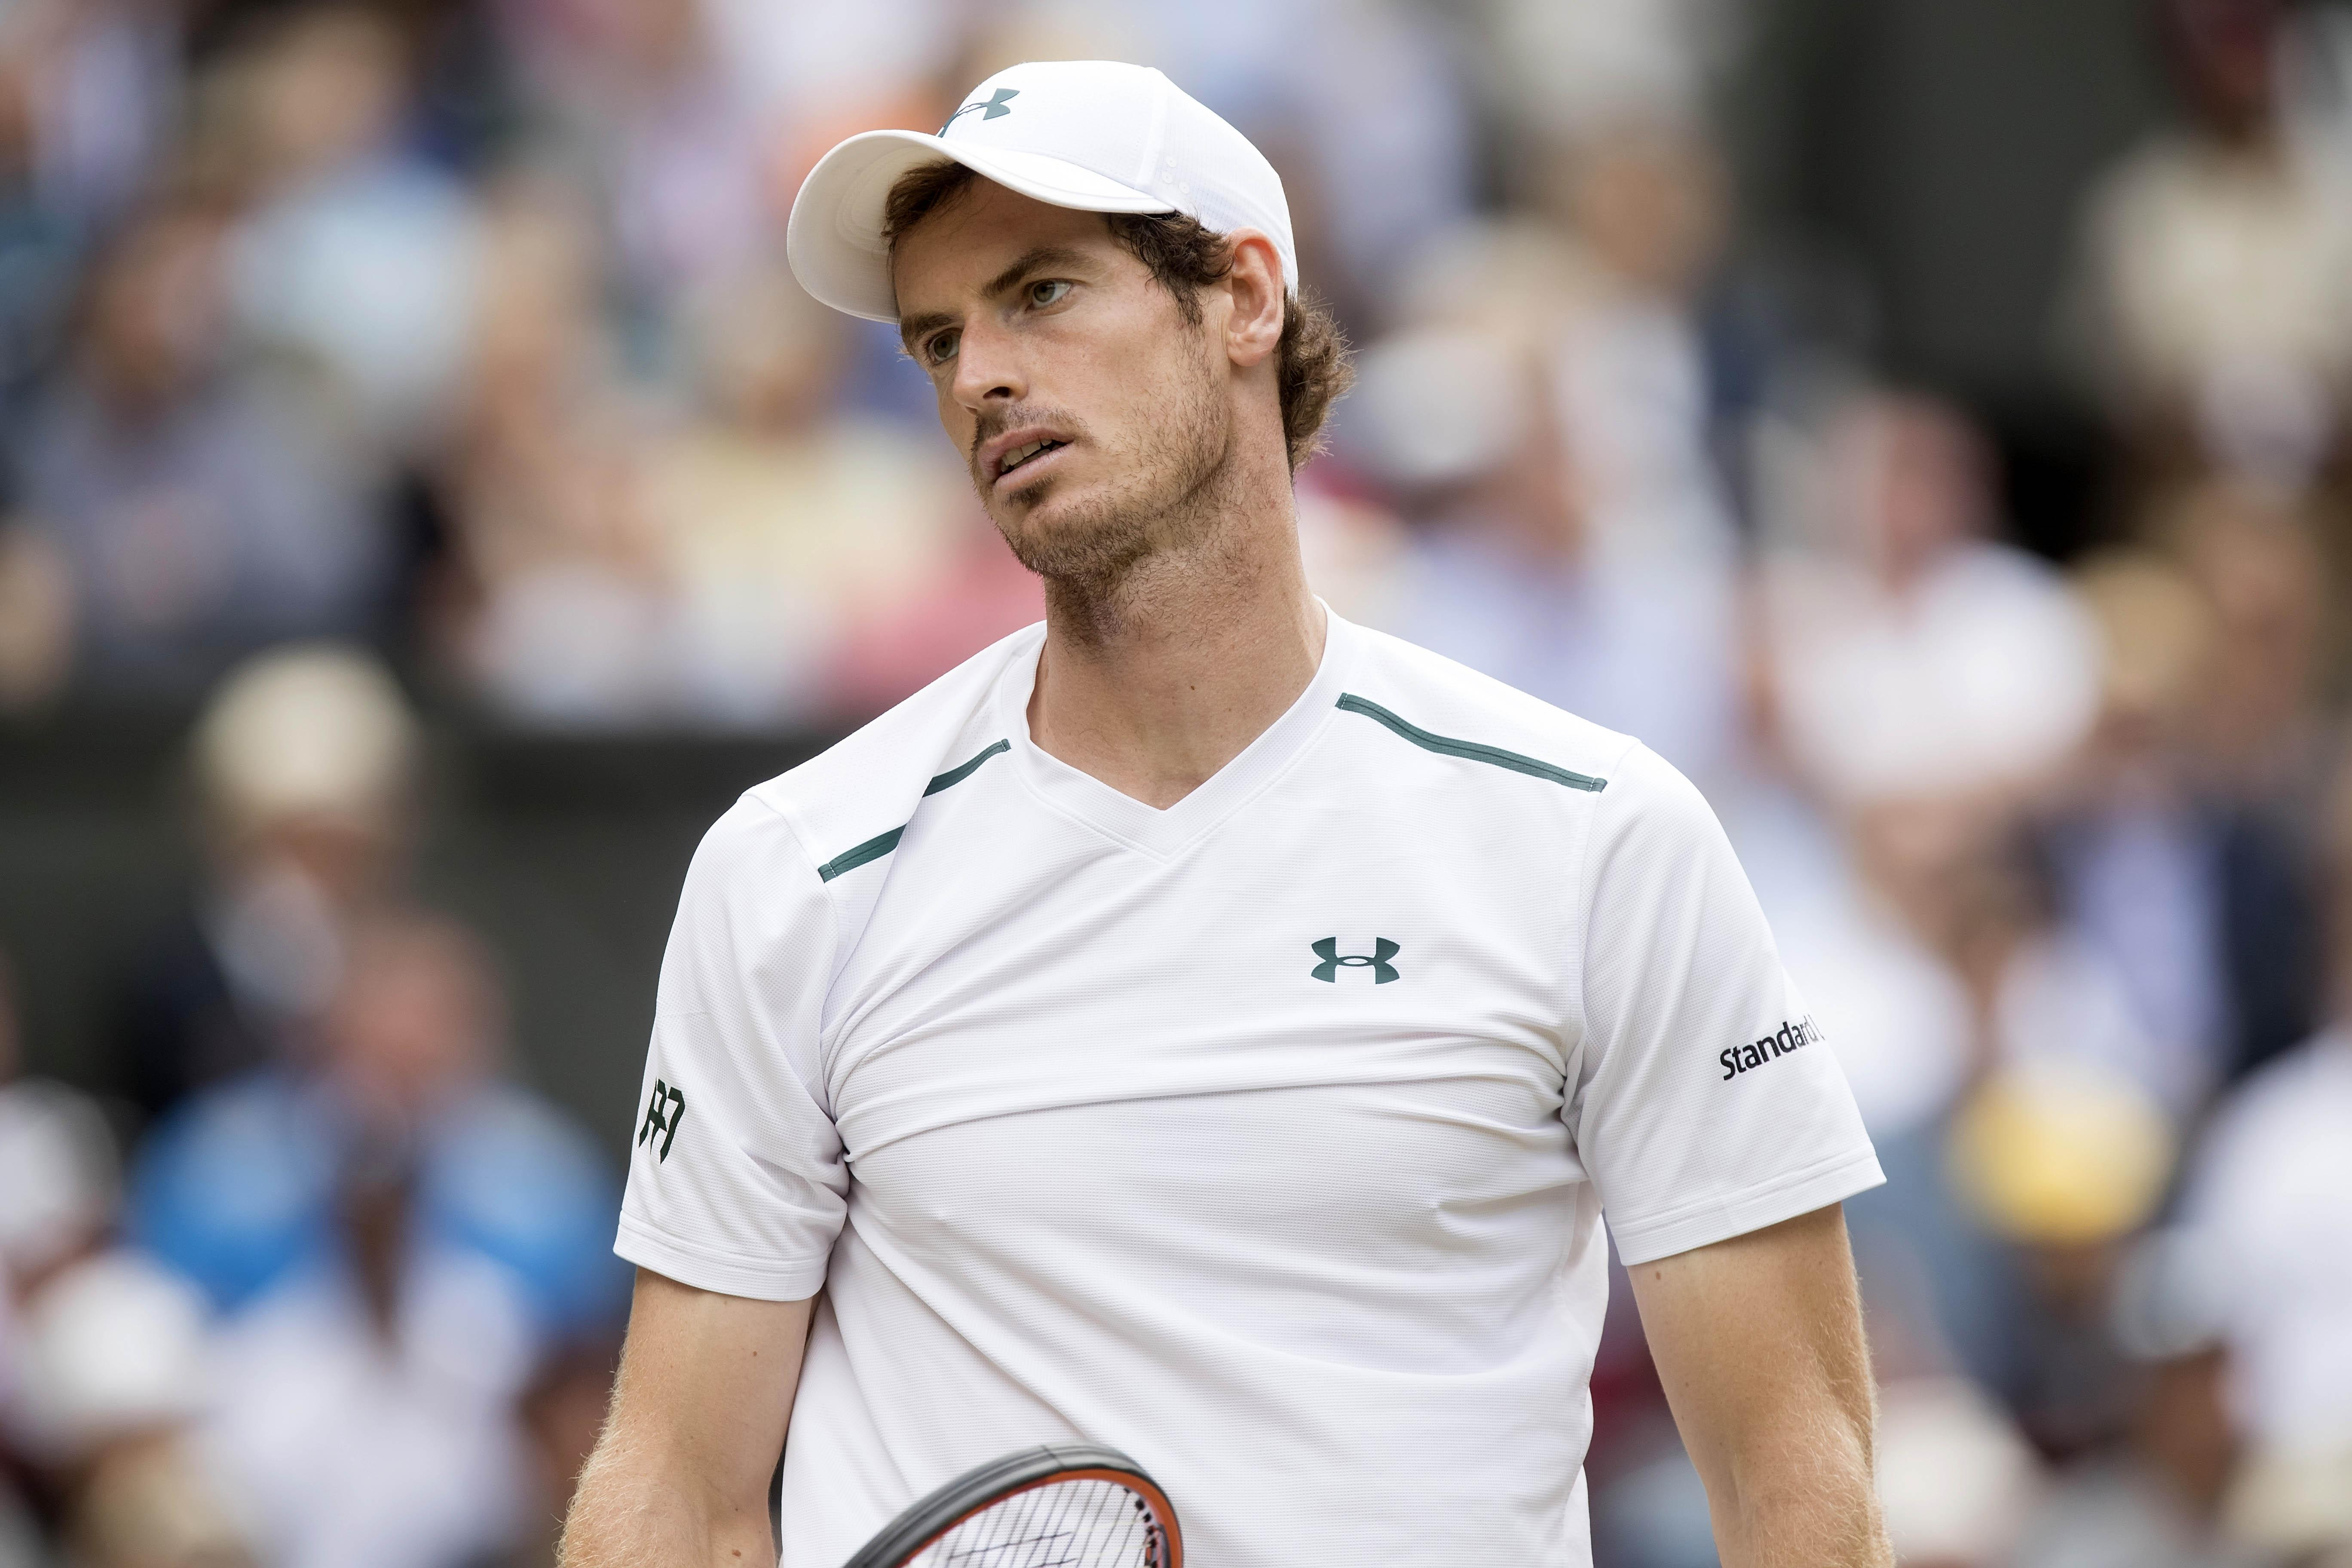 Murray has won Wimbledon twice but the odds are stacked against him to make it three this year